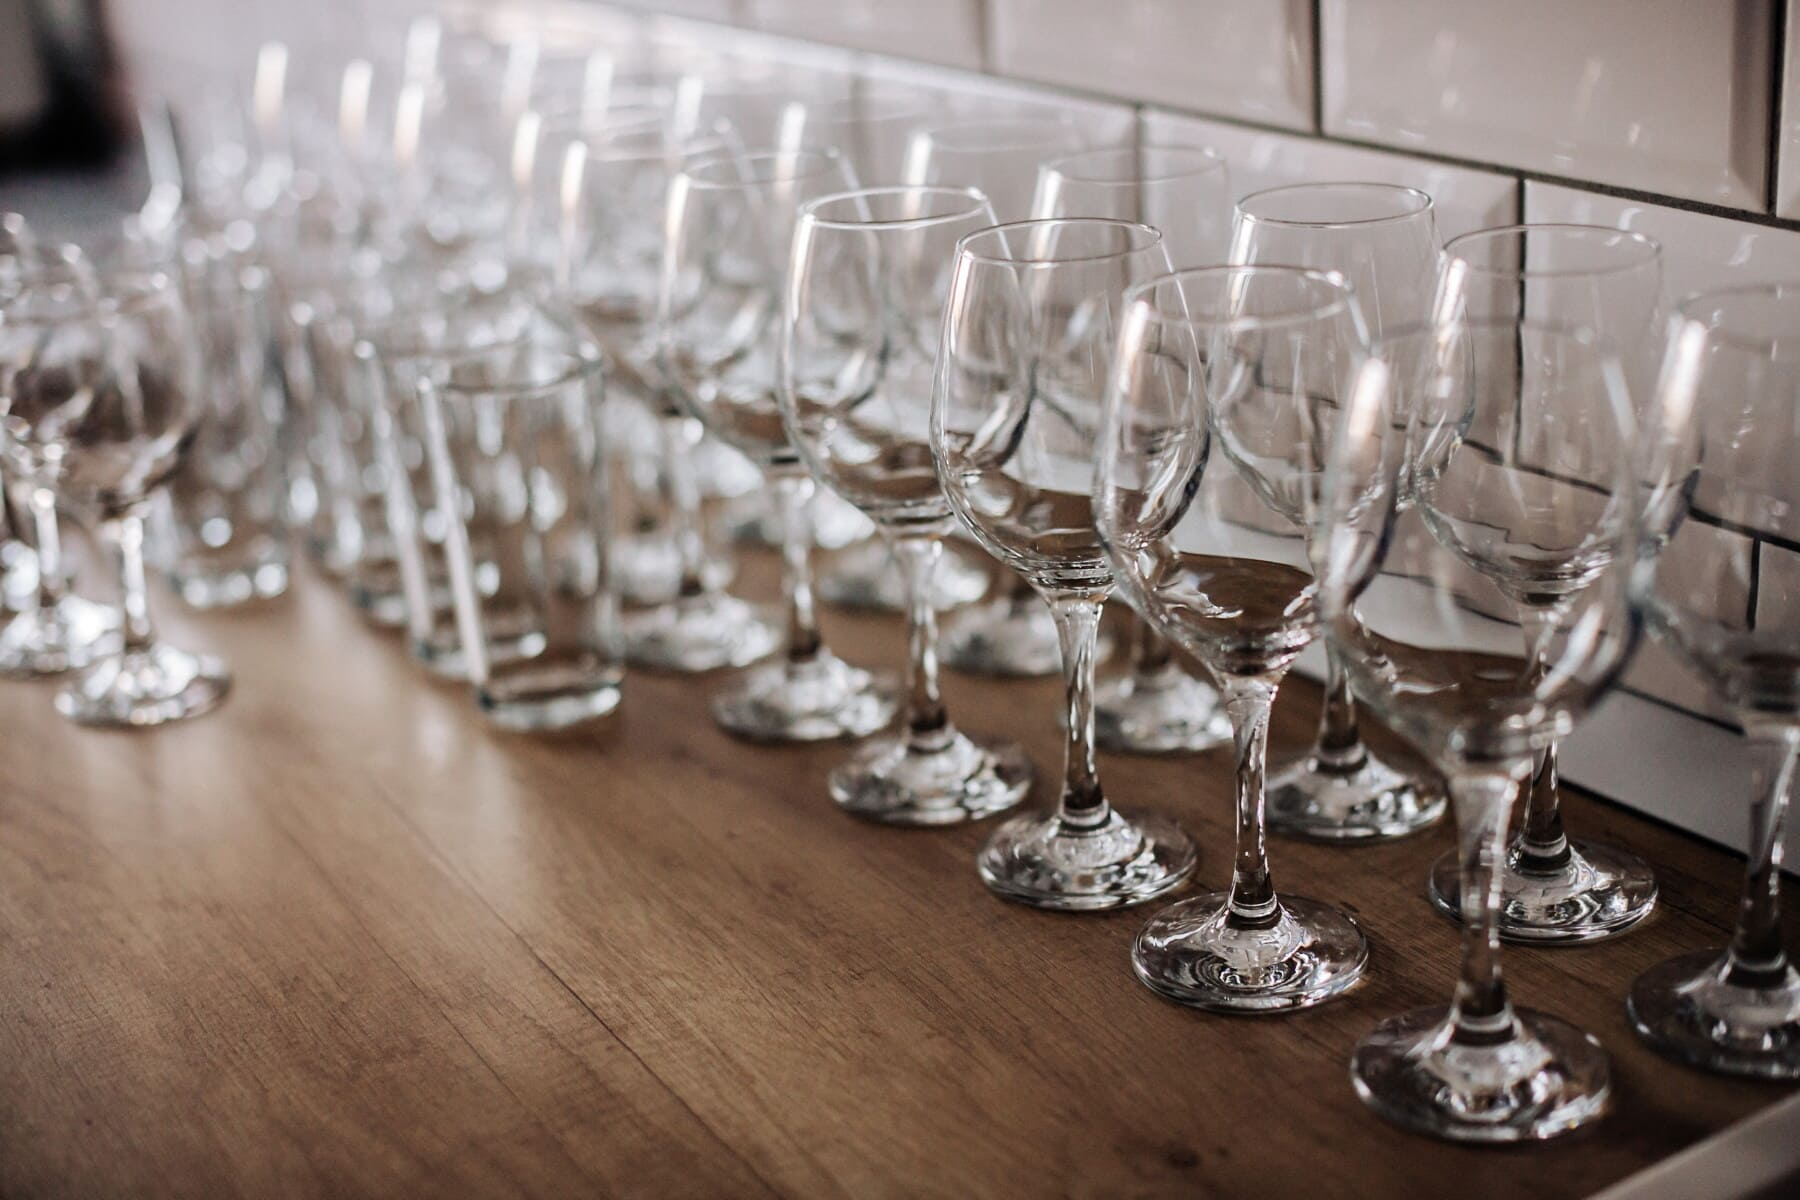 glass, empty, crystal, wine, transparent, table, restaurant, drink, party, dining